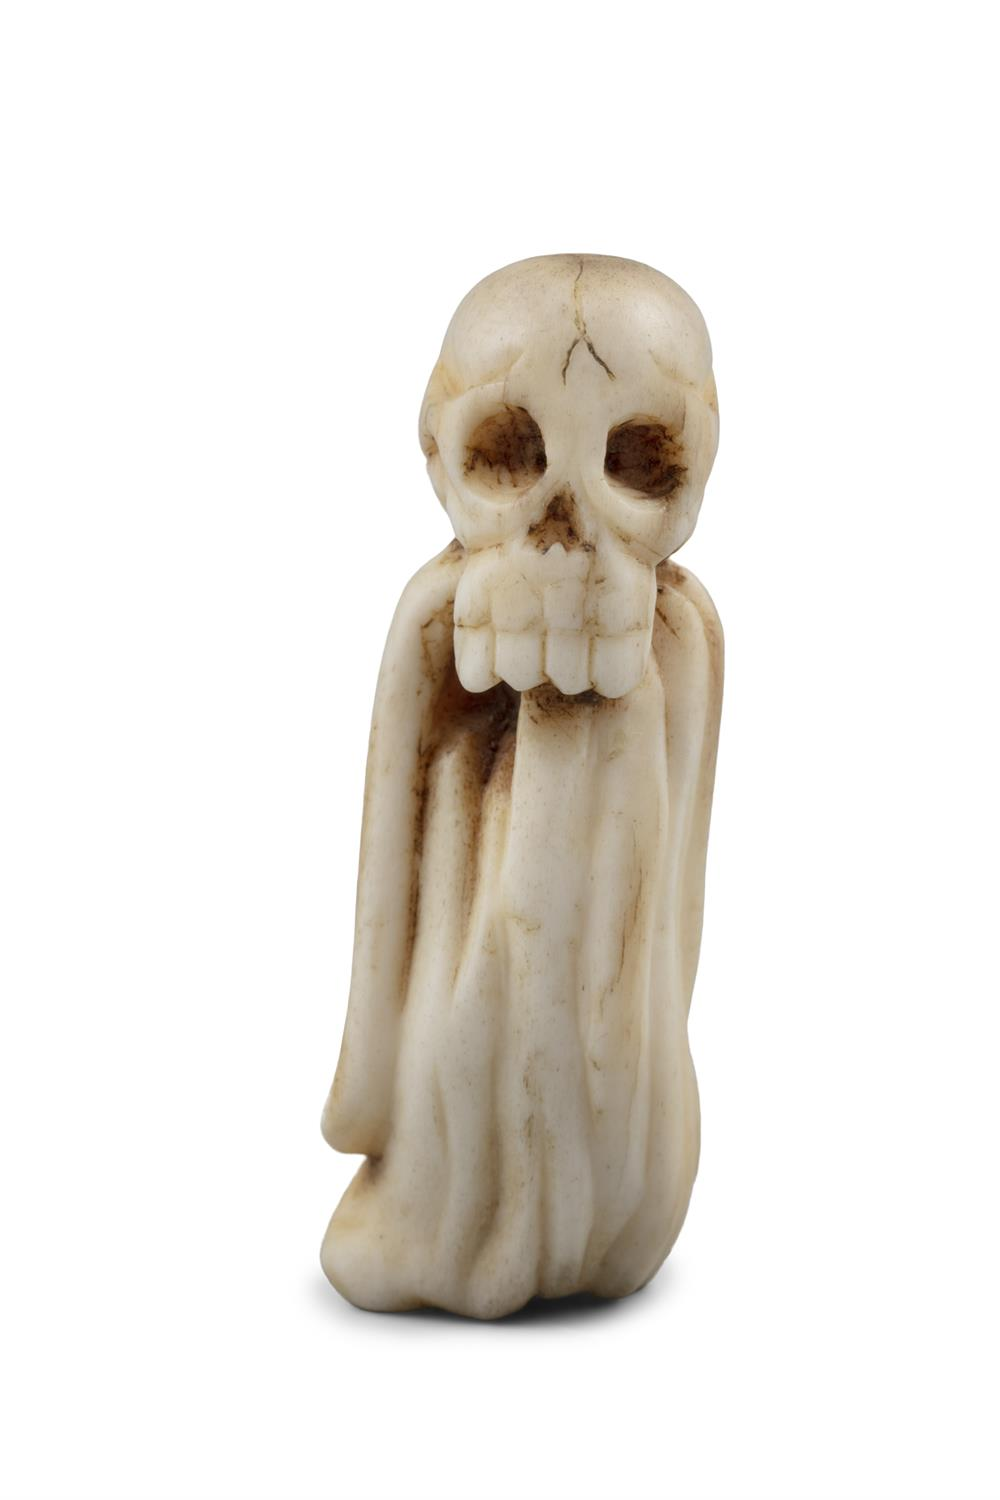 *VANITY - A GROUP OF TWO (2) 'SKULL' KATABORI NETSUKE Japan, 19th century The first one carved out - Image 11 of 18